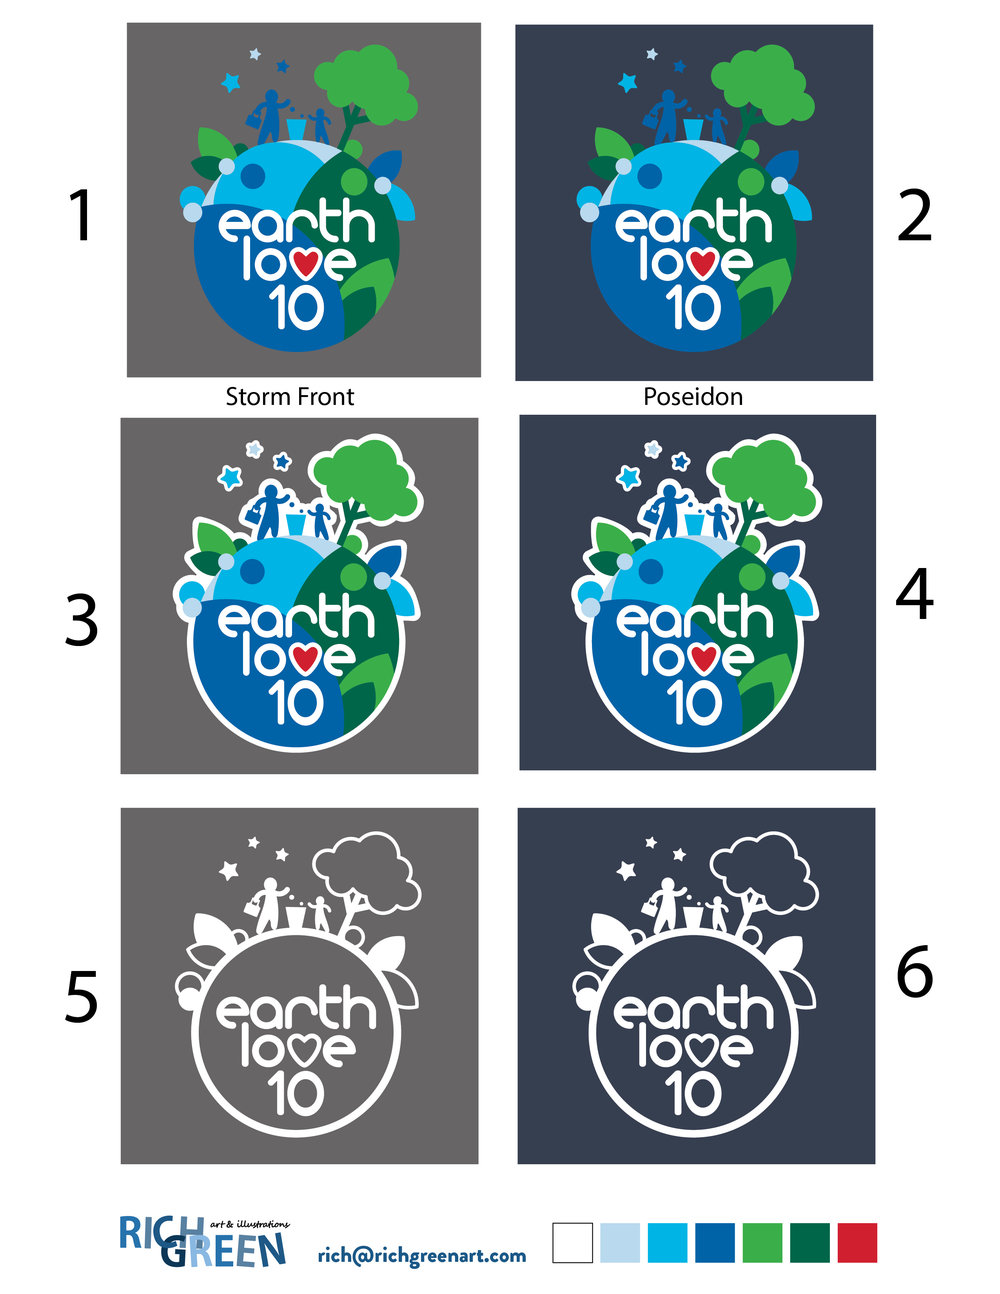 Earth Love 10 Concepts v02 02_Color Mockups.jpg